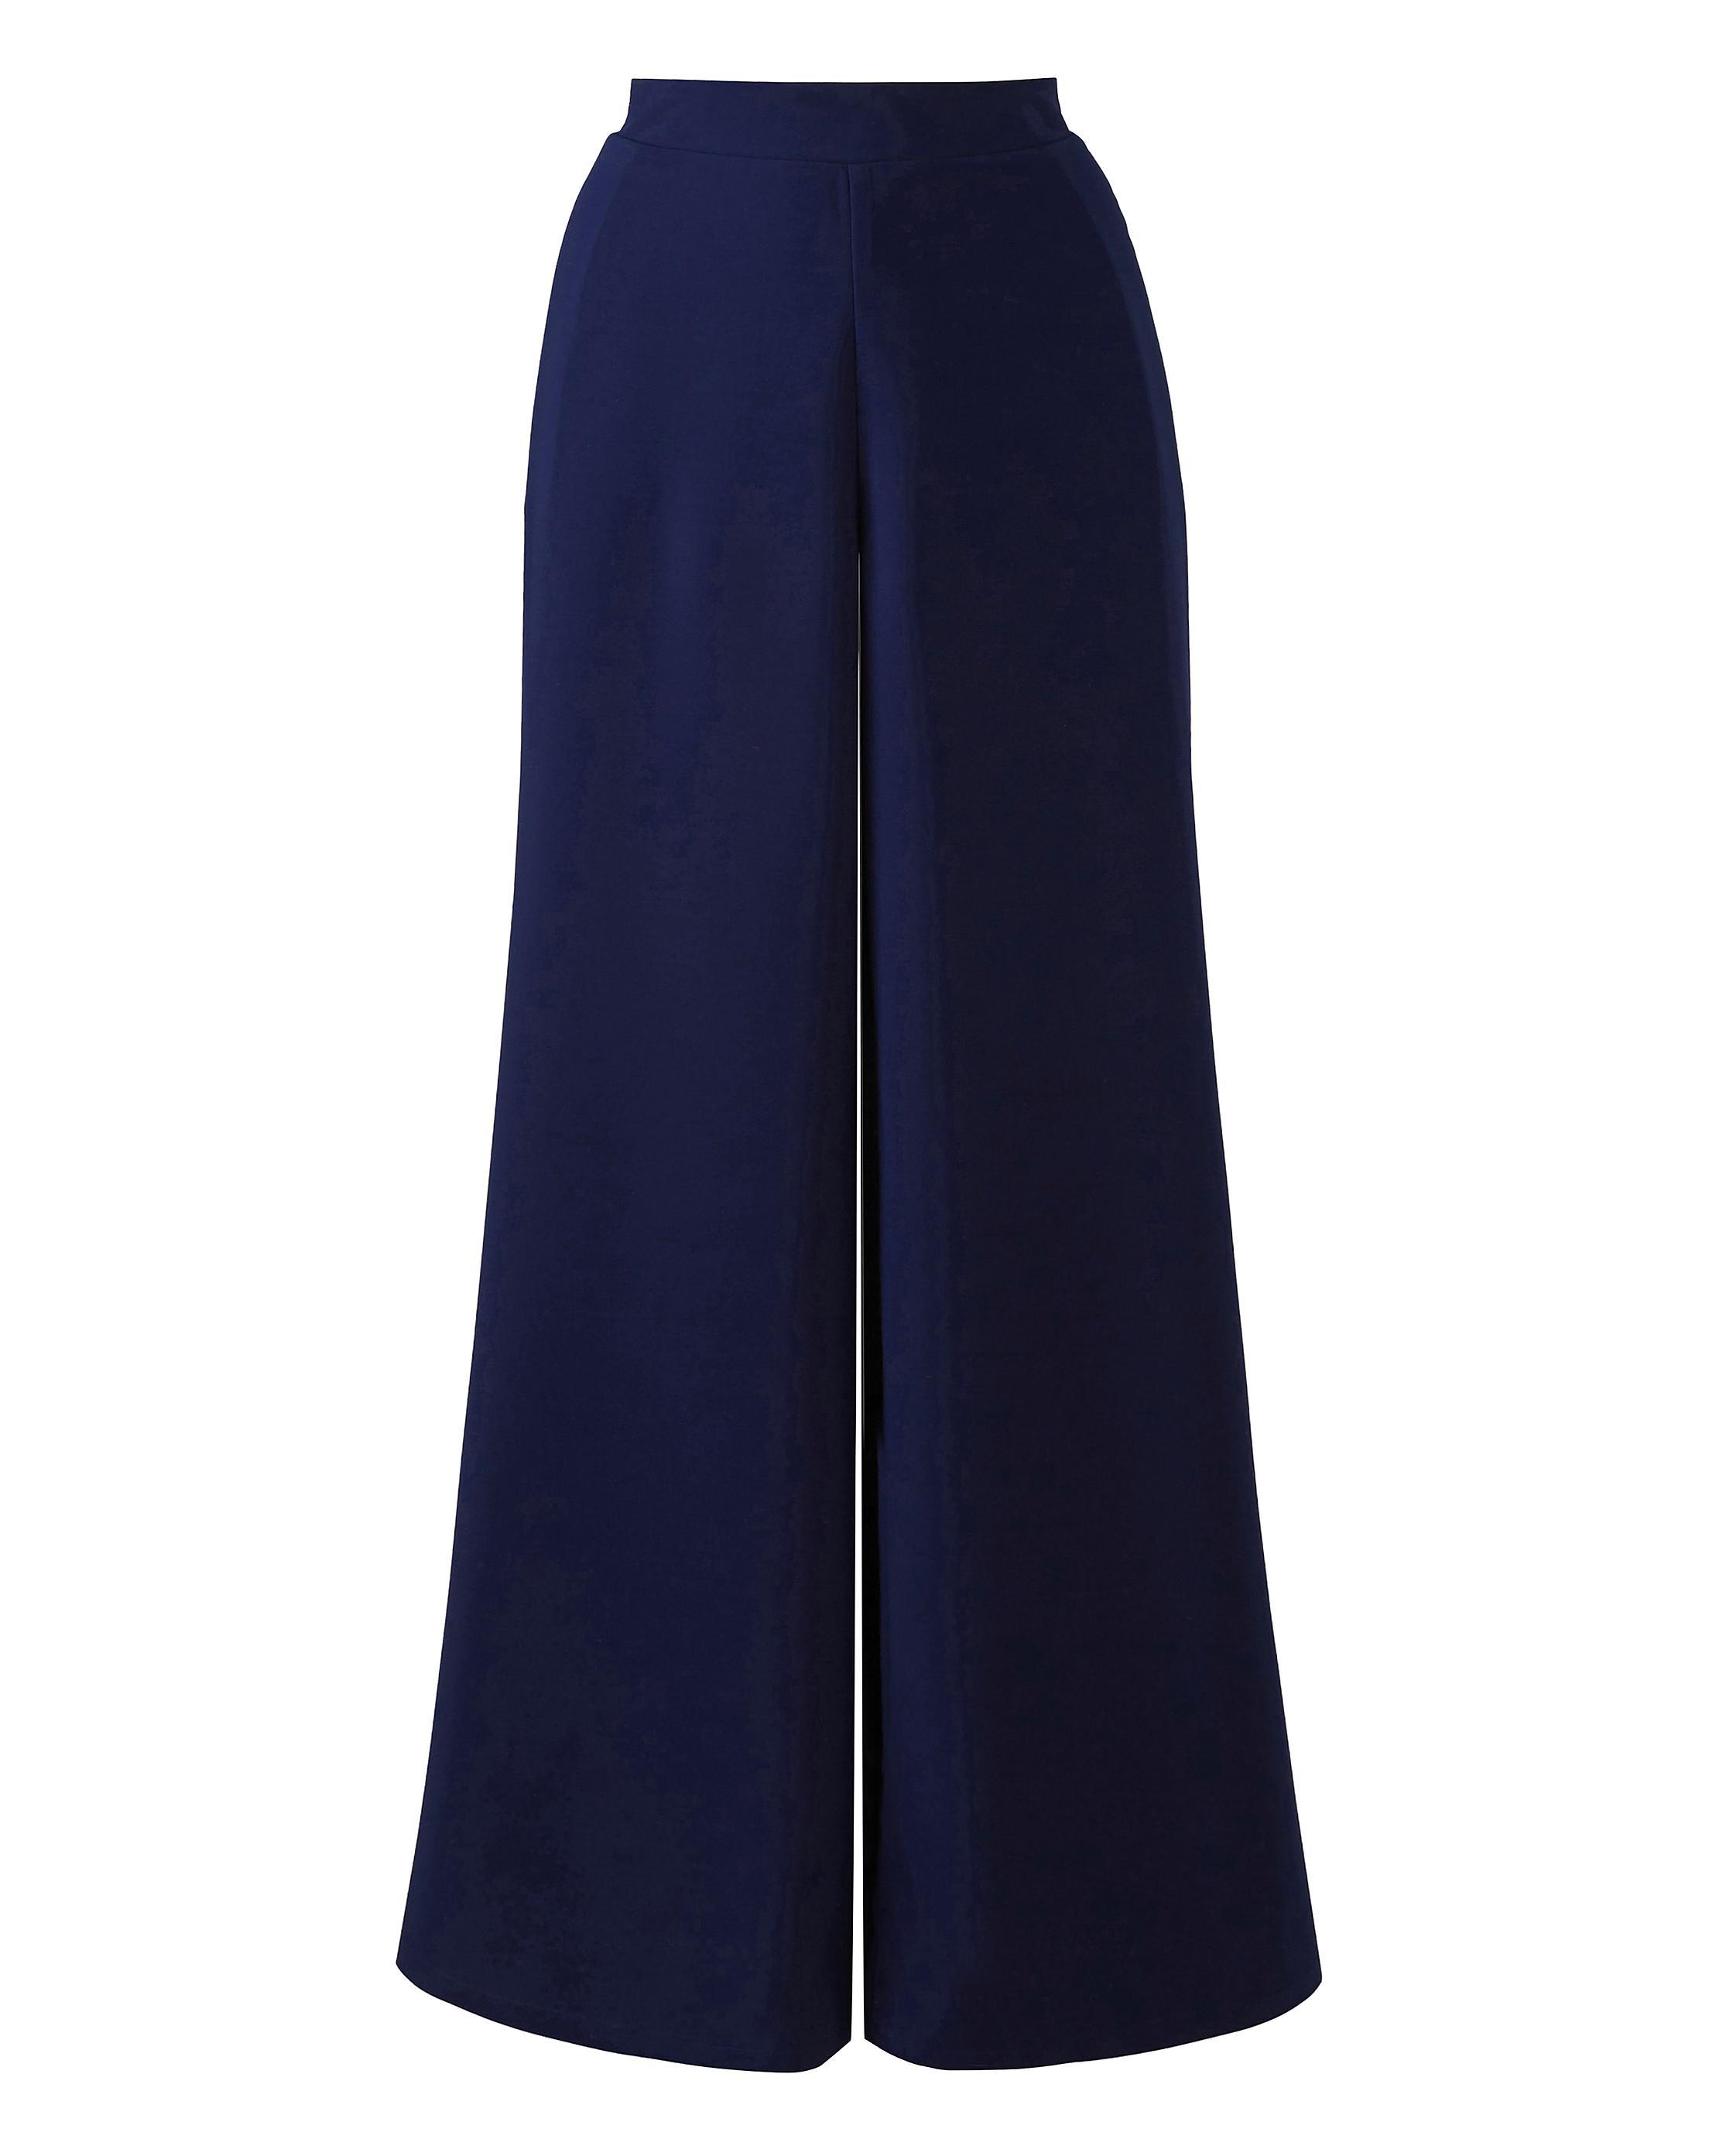 87697ec3d57 Lyst - Simply Be Black Crepe Palazzo Pants in Blue